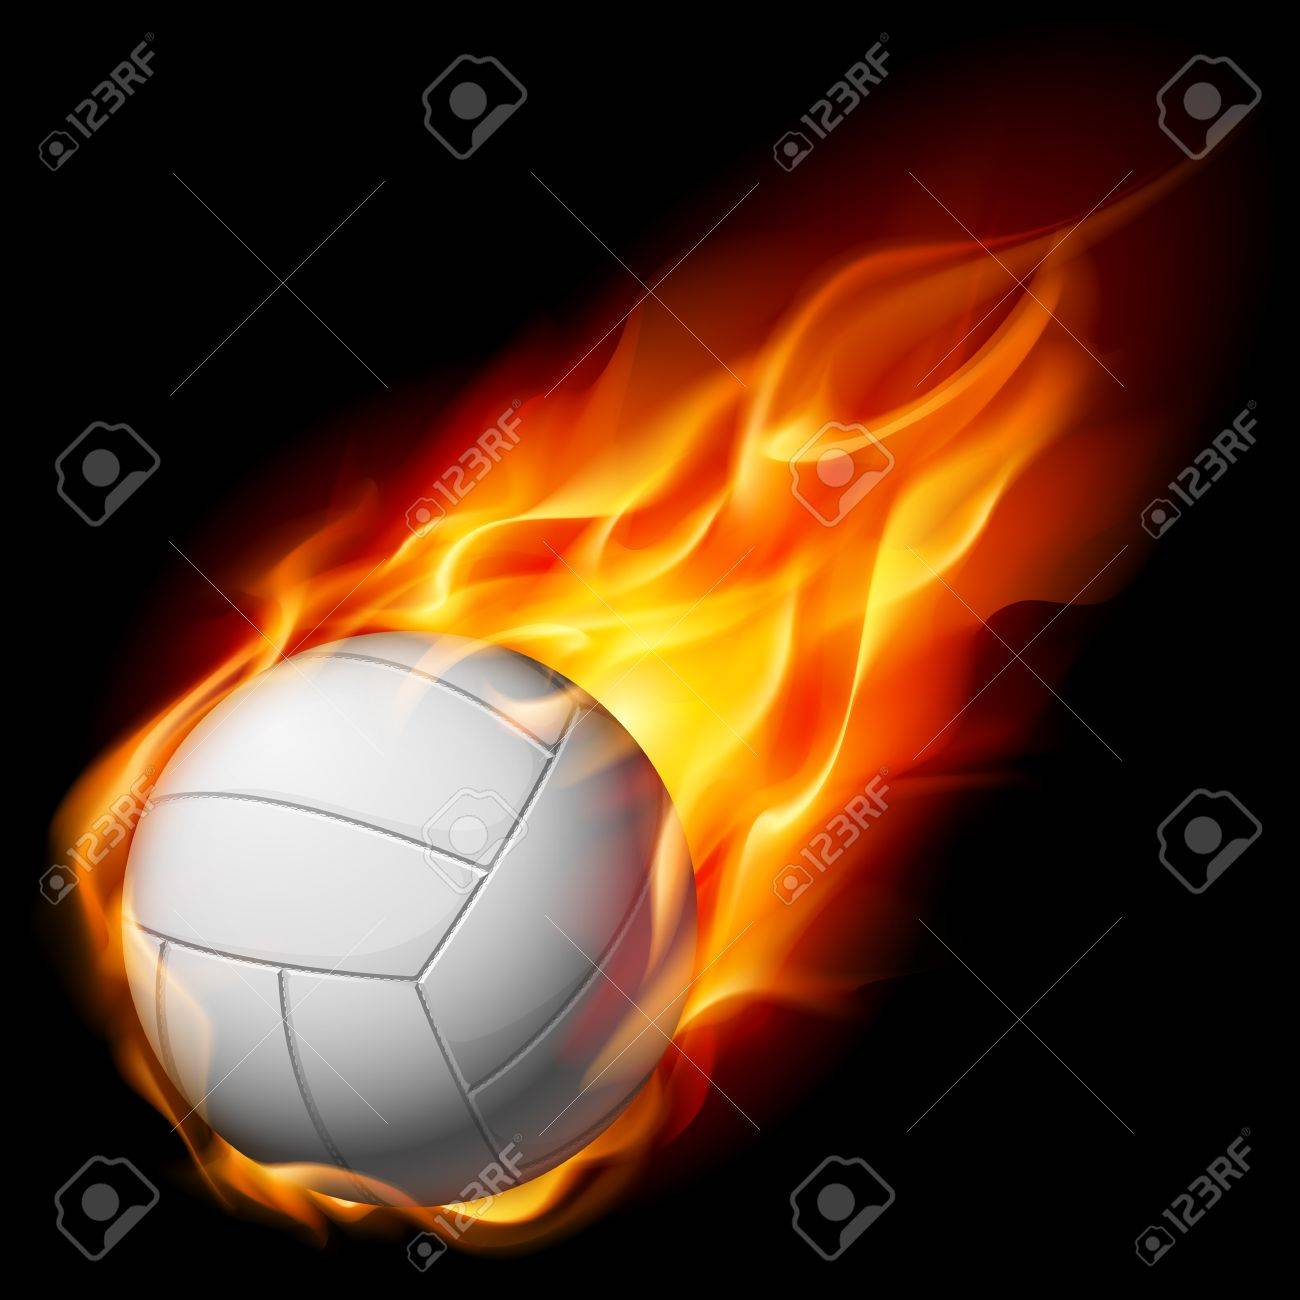 Fire Volleyball Illustration On White Background Royalty 1300x1300